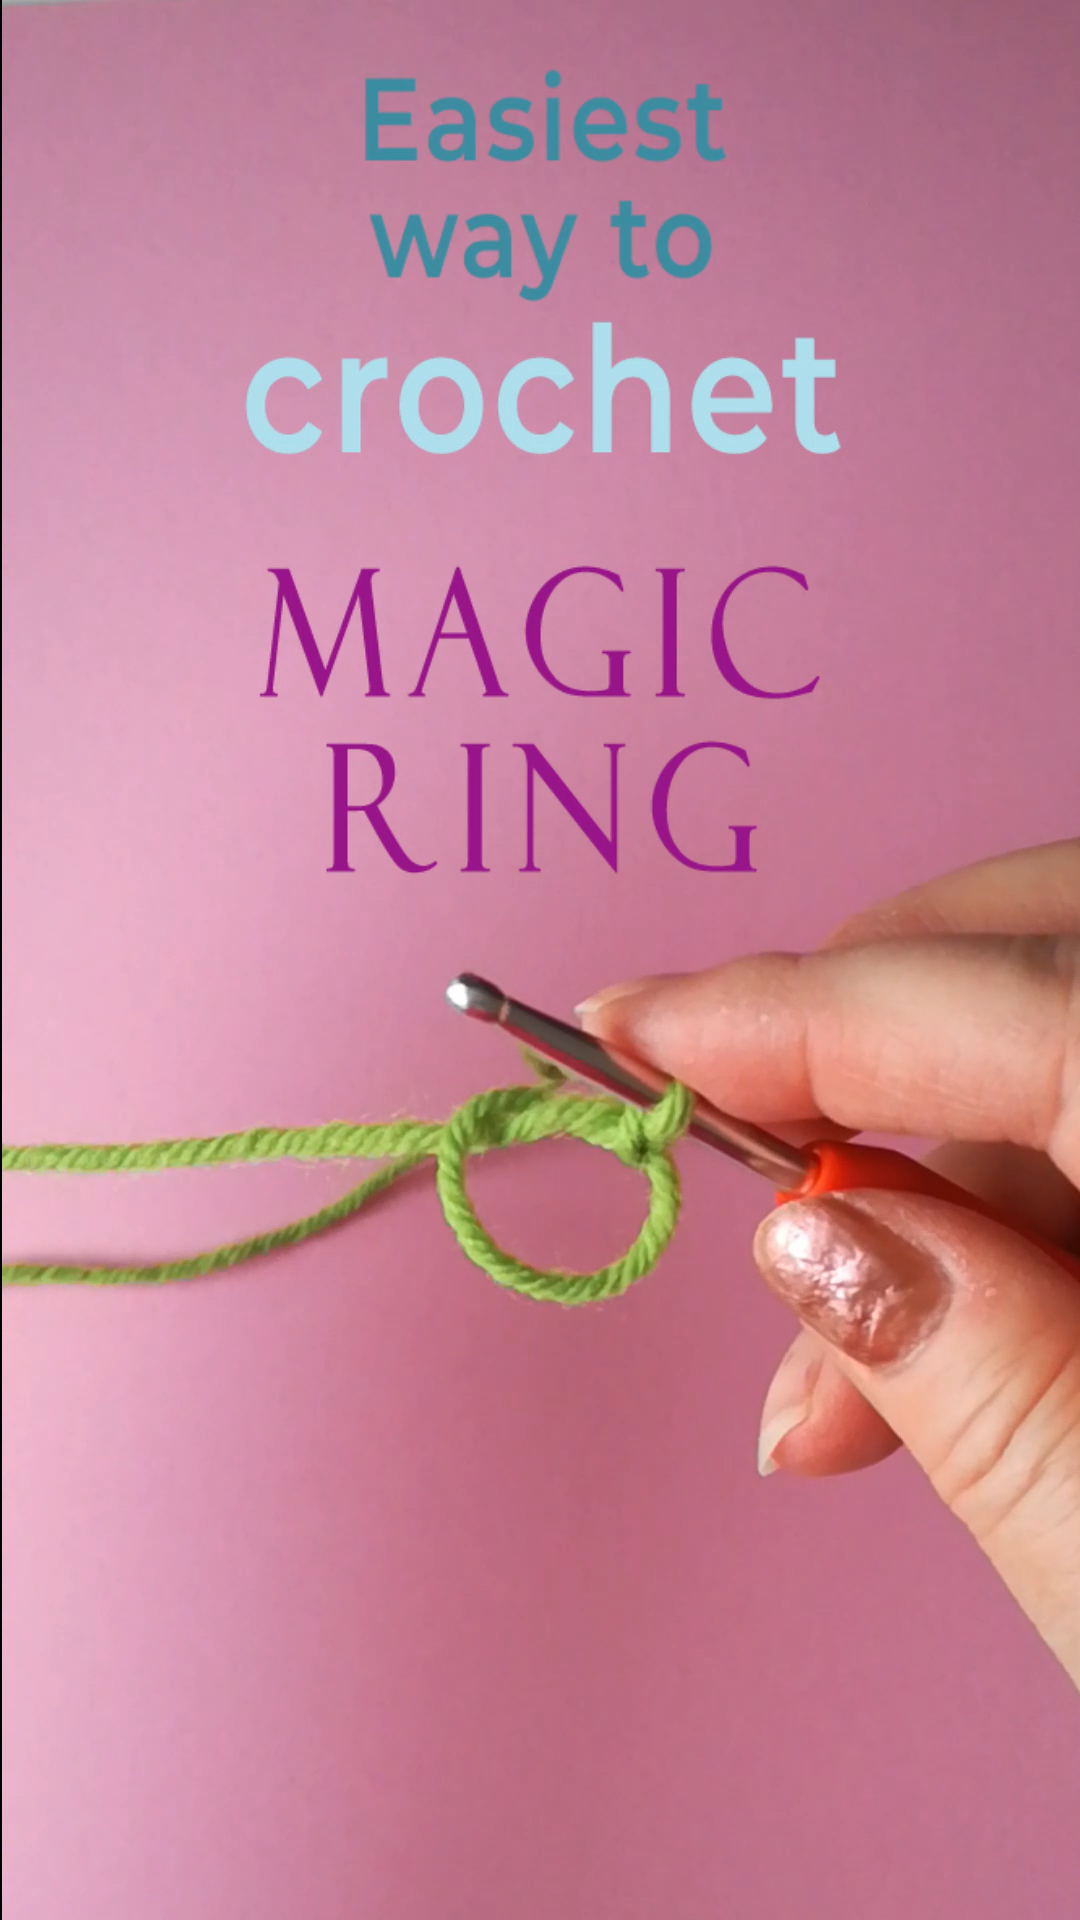 Photo of Easiest way to crochet magic ring